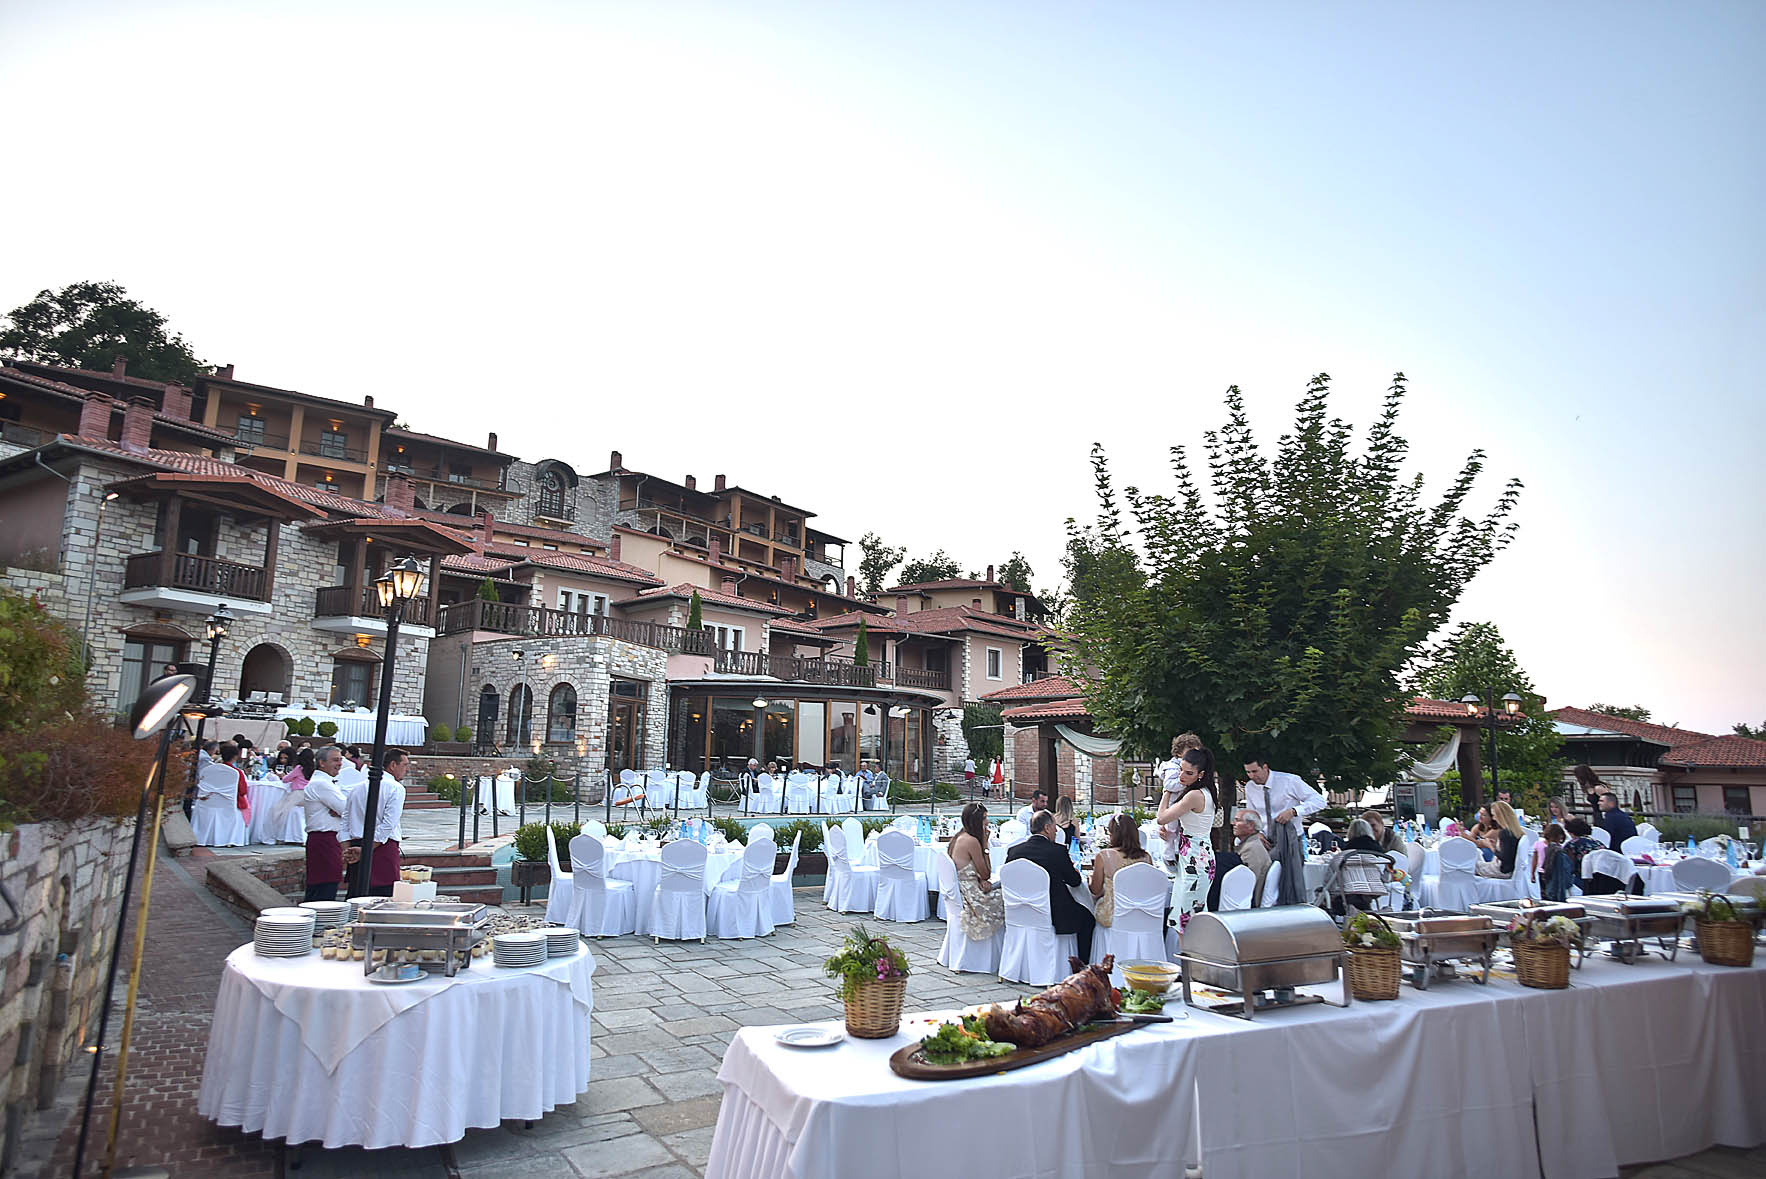 wedding-hotel-kazarma-limni-plastira-alexis-koumaditis-photography